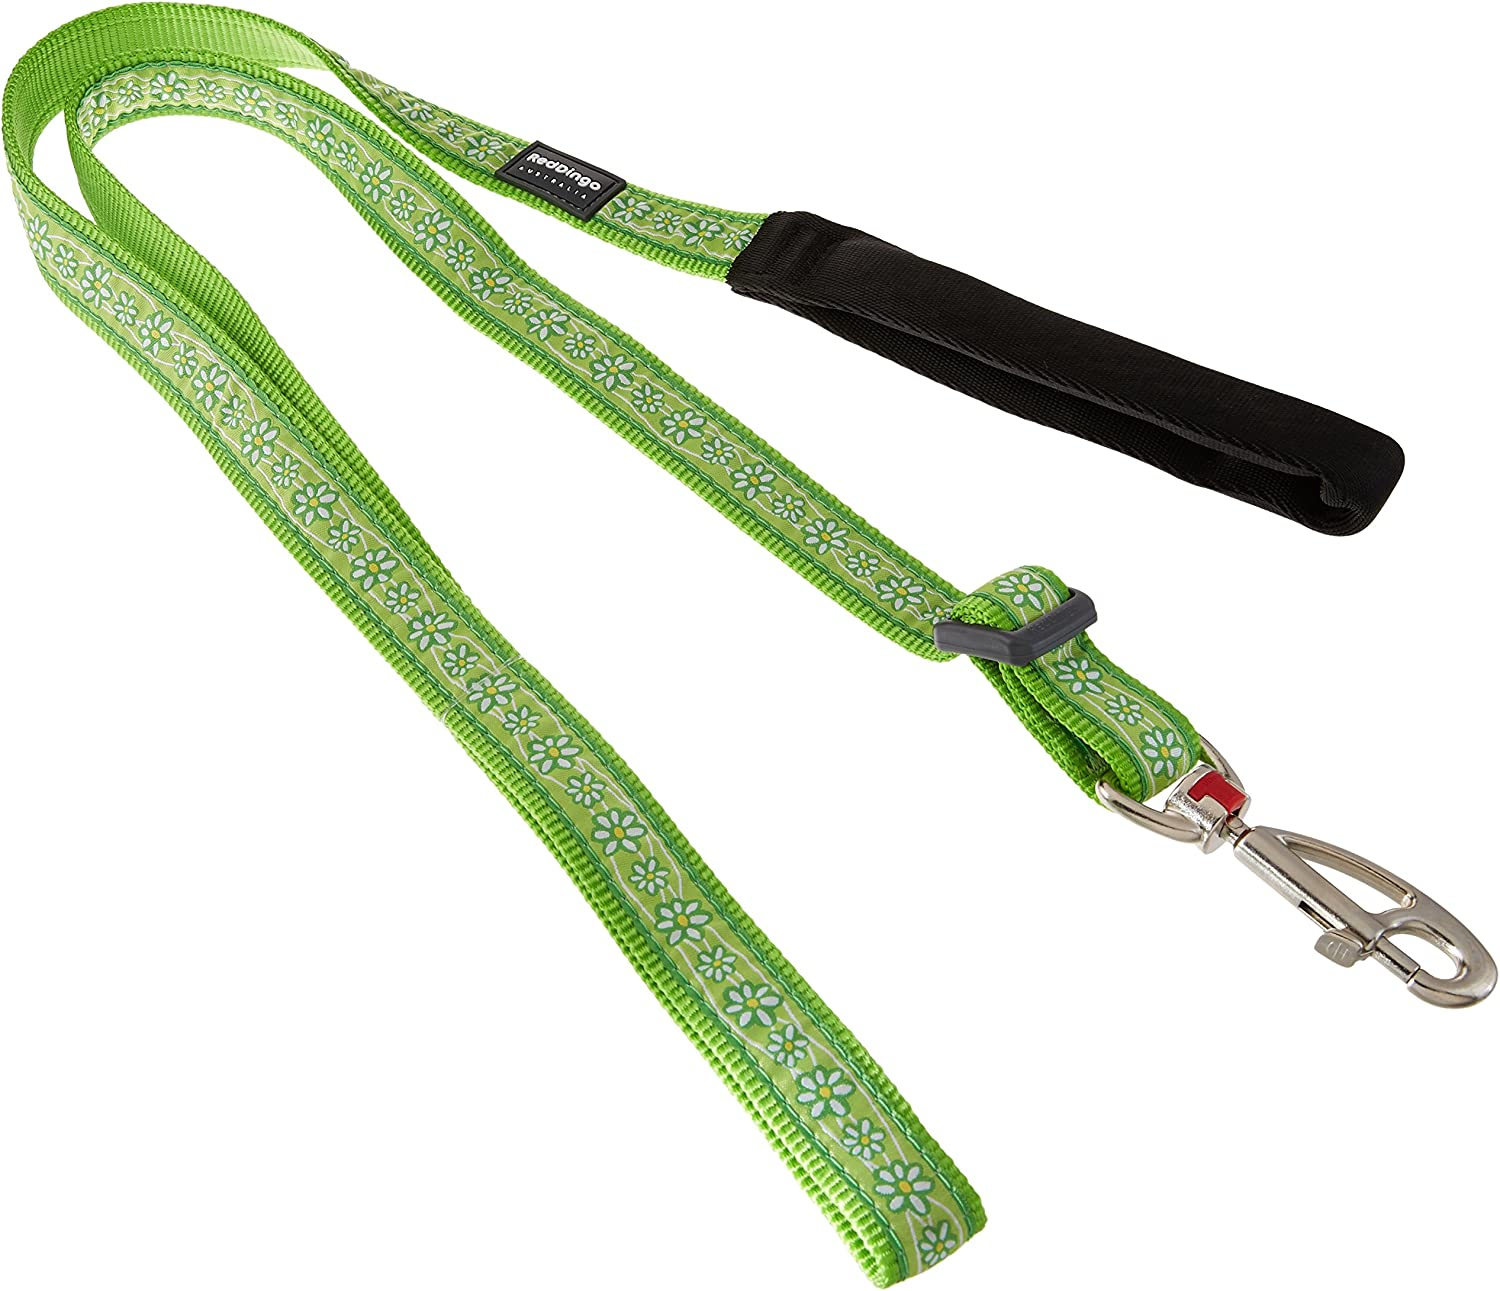 Red Dingo Daisy Chain Dog Lead, Large, Lime Green